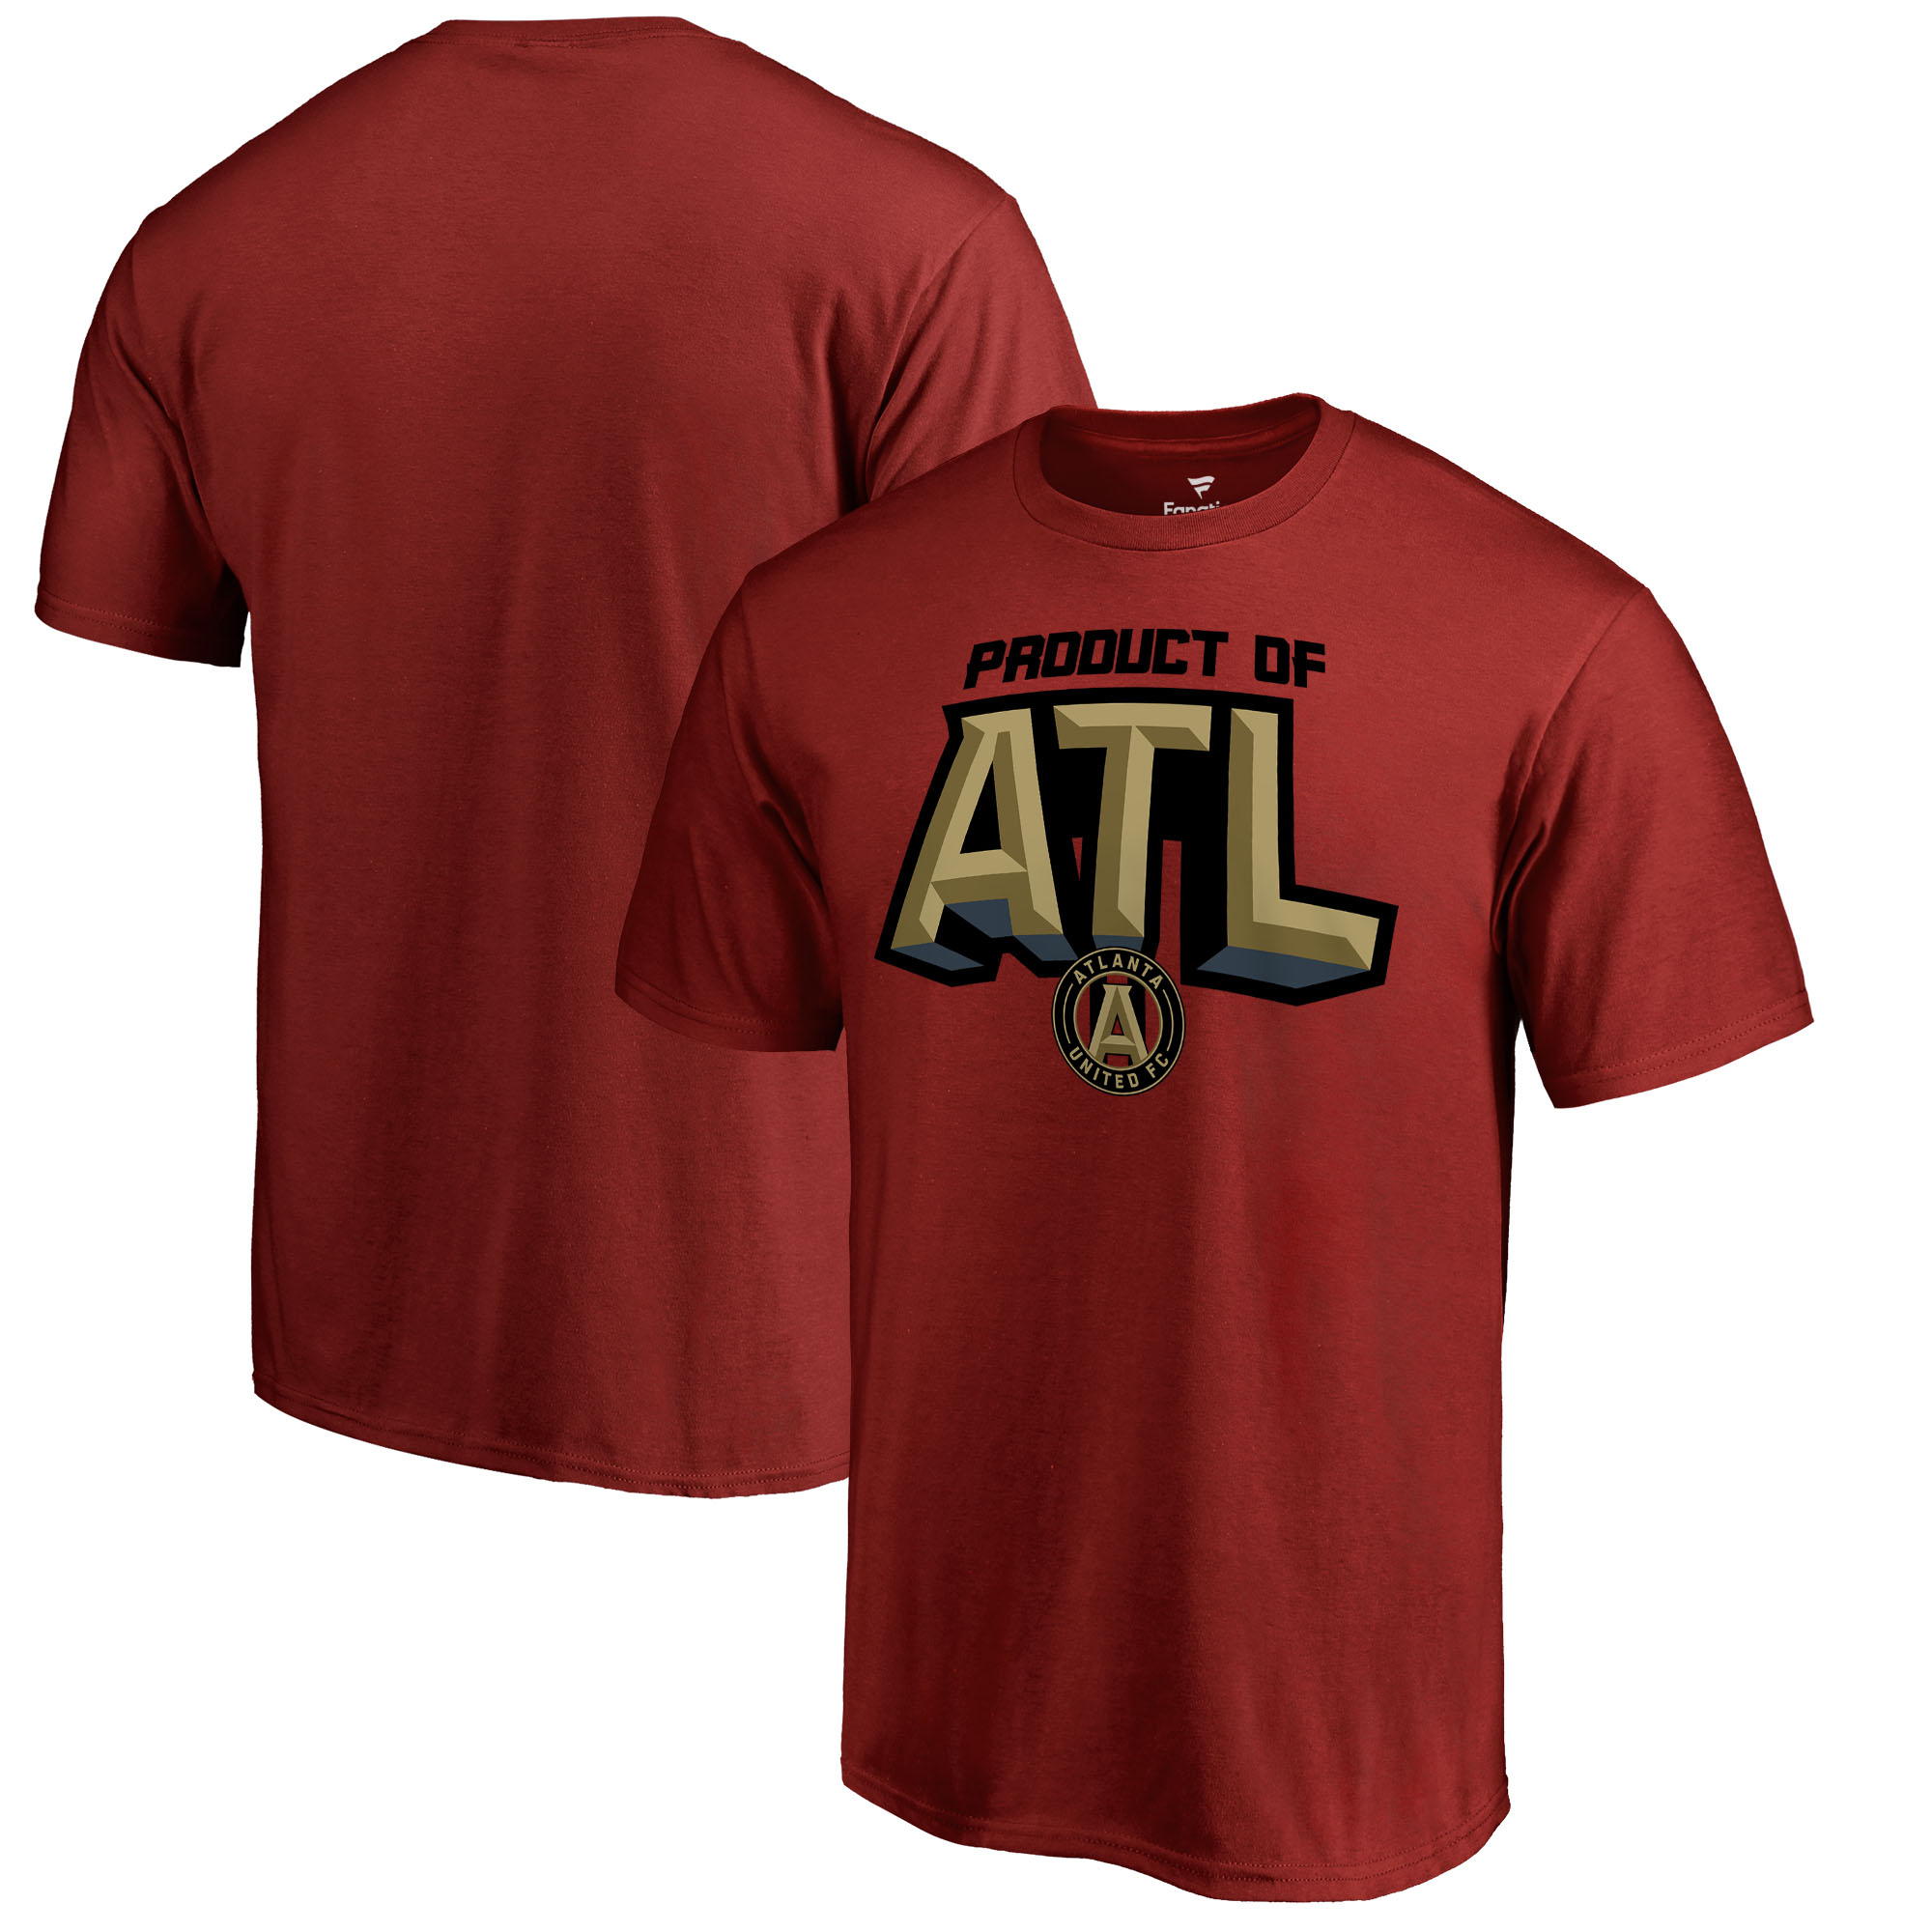 Atlanta United FC Fanatics Branded Hometown Collection ATL Product T-Shirt - Red